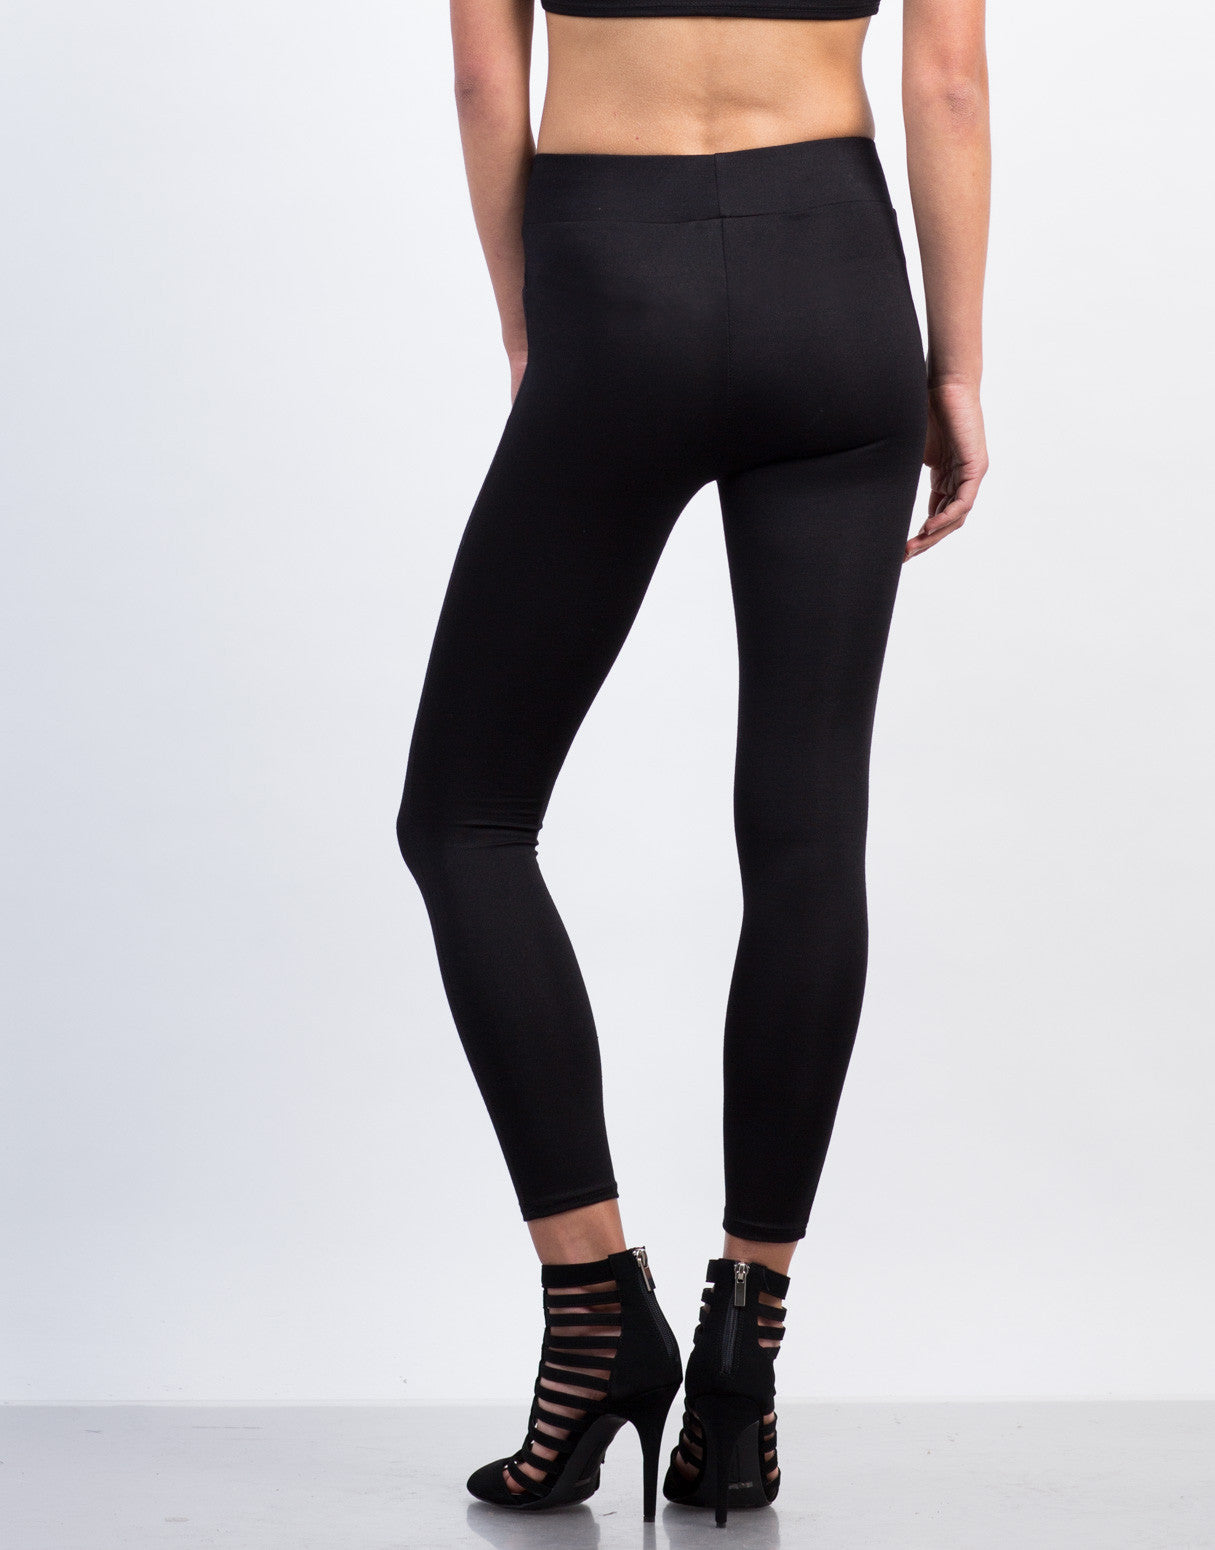 Back View of Simple High Waisted Legging Pants